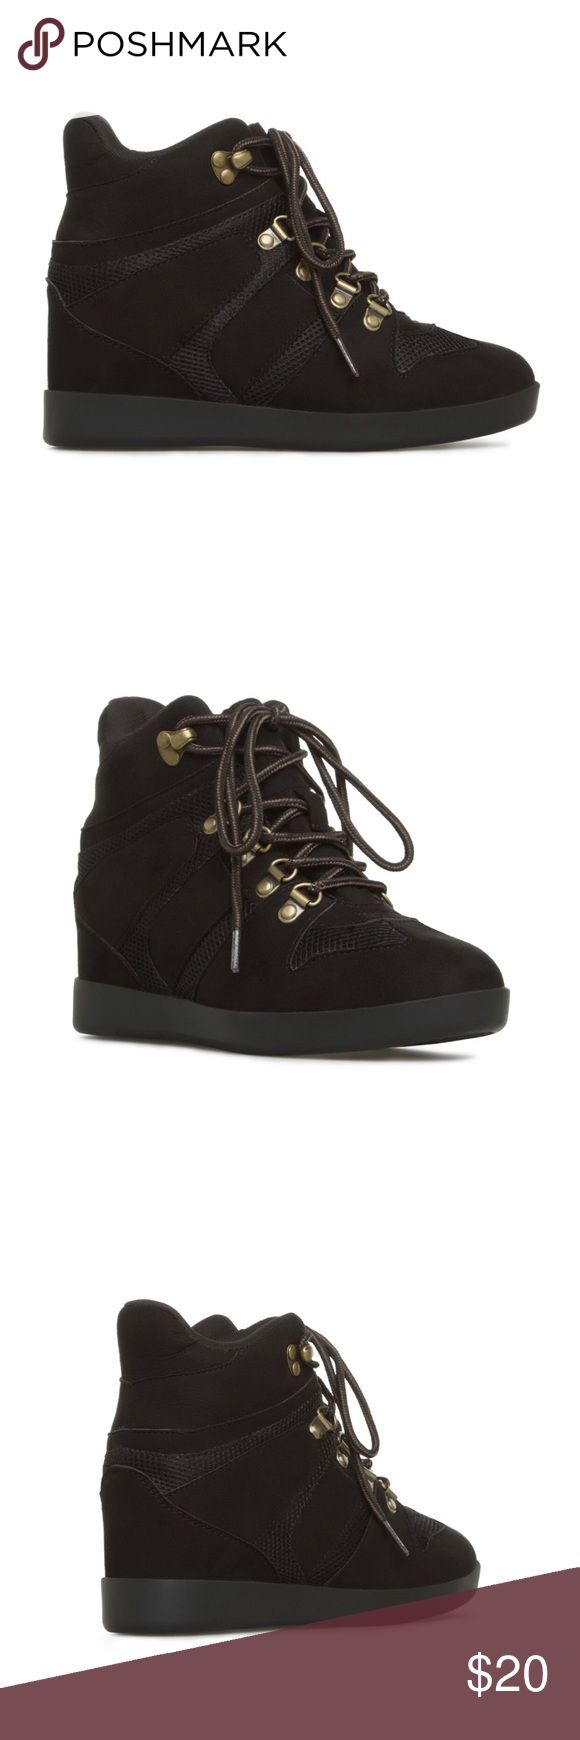 ♥️♥️ʙʀᴀɴᴅ ɴᴇᴡ♥️♥️ Shoe Dazzle Heeled Sneakers 7.5 * BRAND NEW in box * Size 7.5 US * Name: Norma * Shoe Dazzle * Lace Up Sneaker Wedges Shoe Dazzle Shoes Heeled Boots